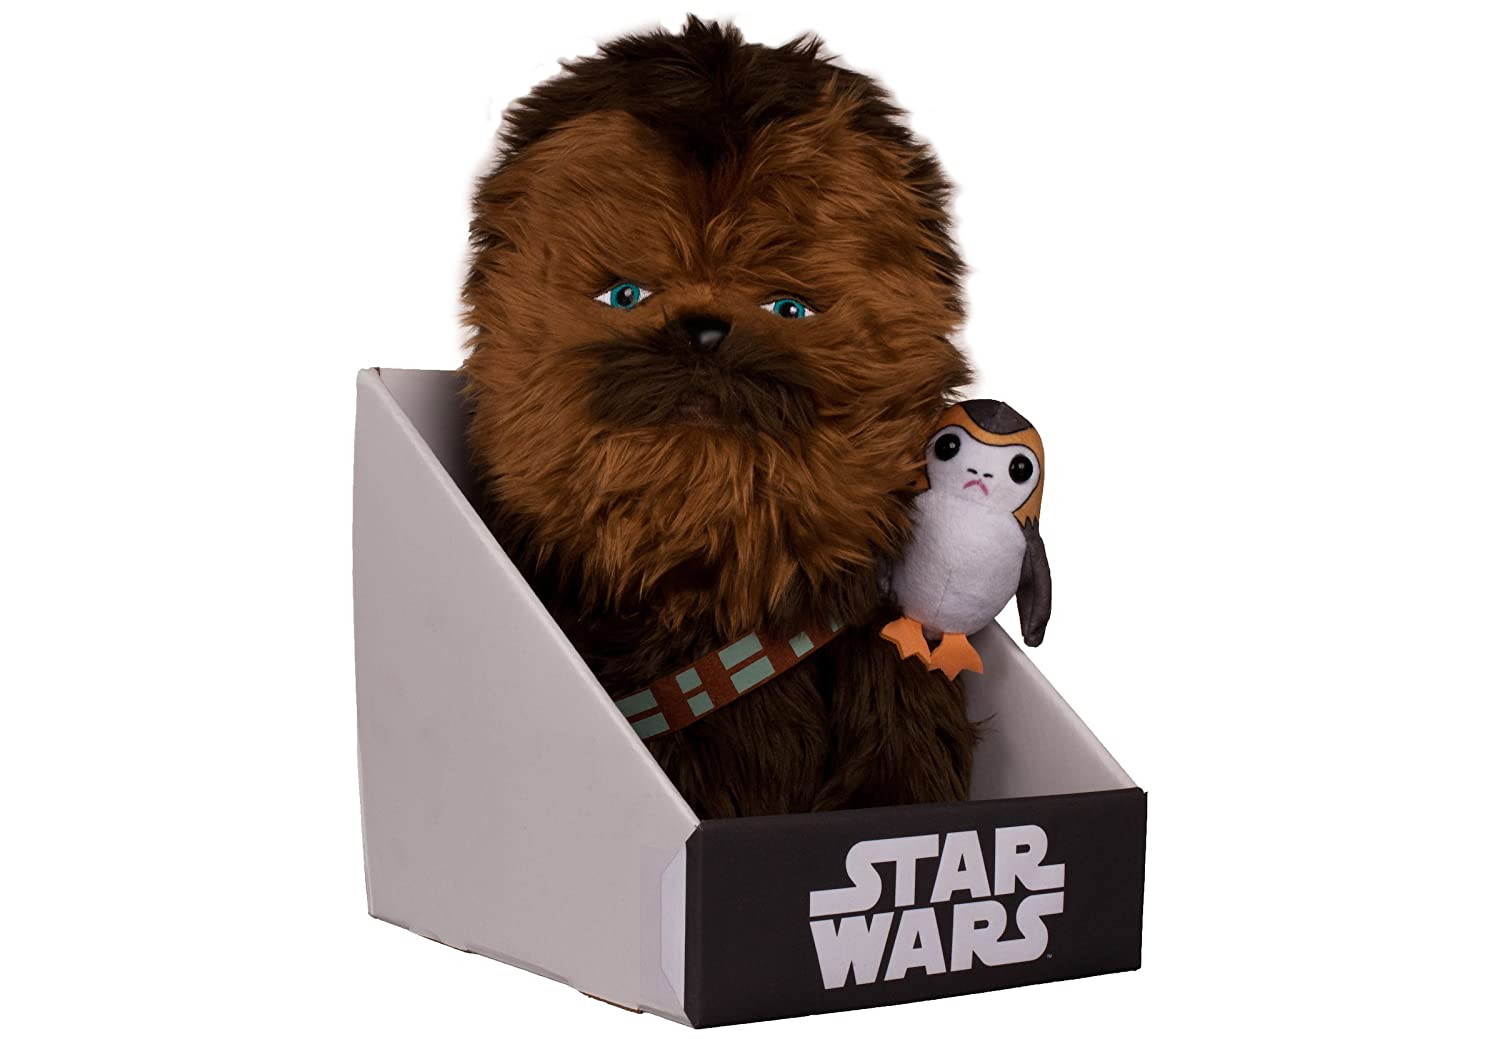 12 Super-Deformed Plush Star Wars Episode VIII Chewbacca W//PORG Action Figure FLAHC 14801 Comic Images Large